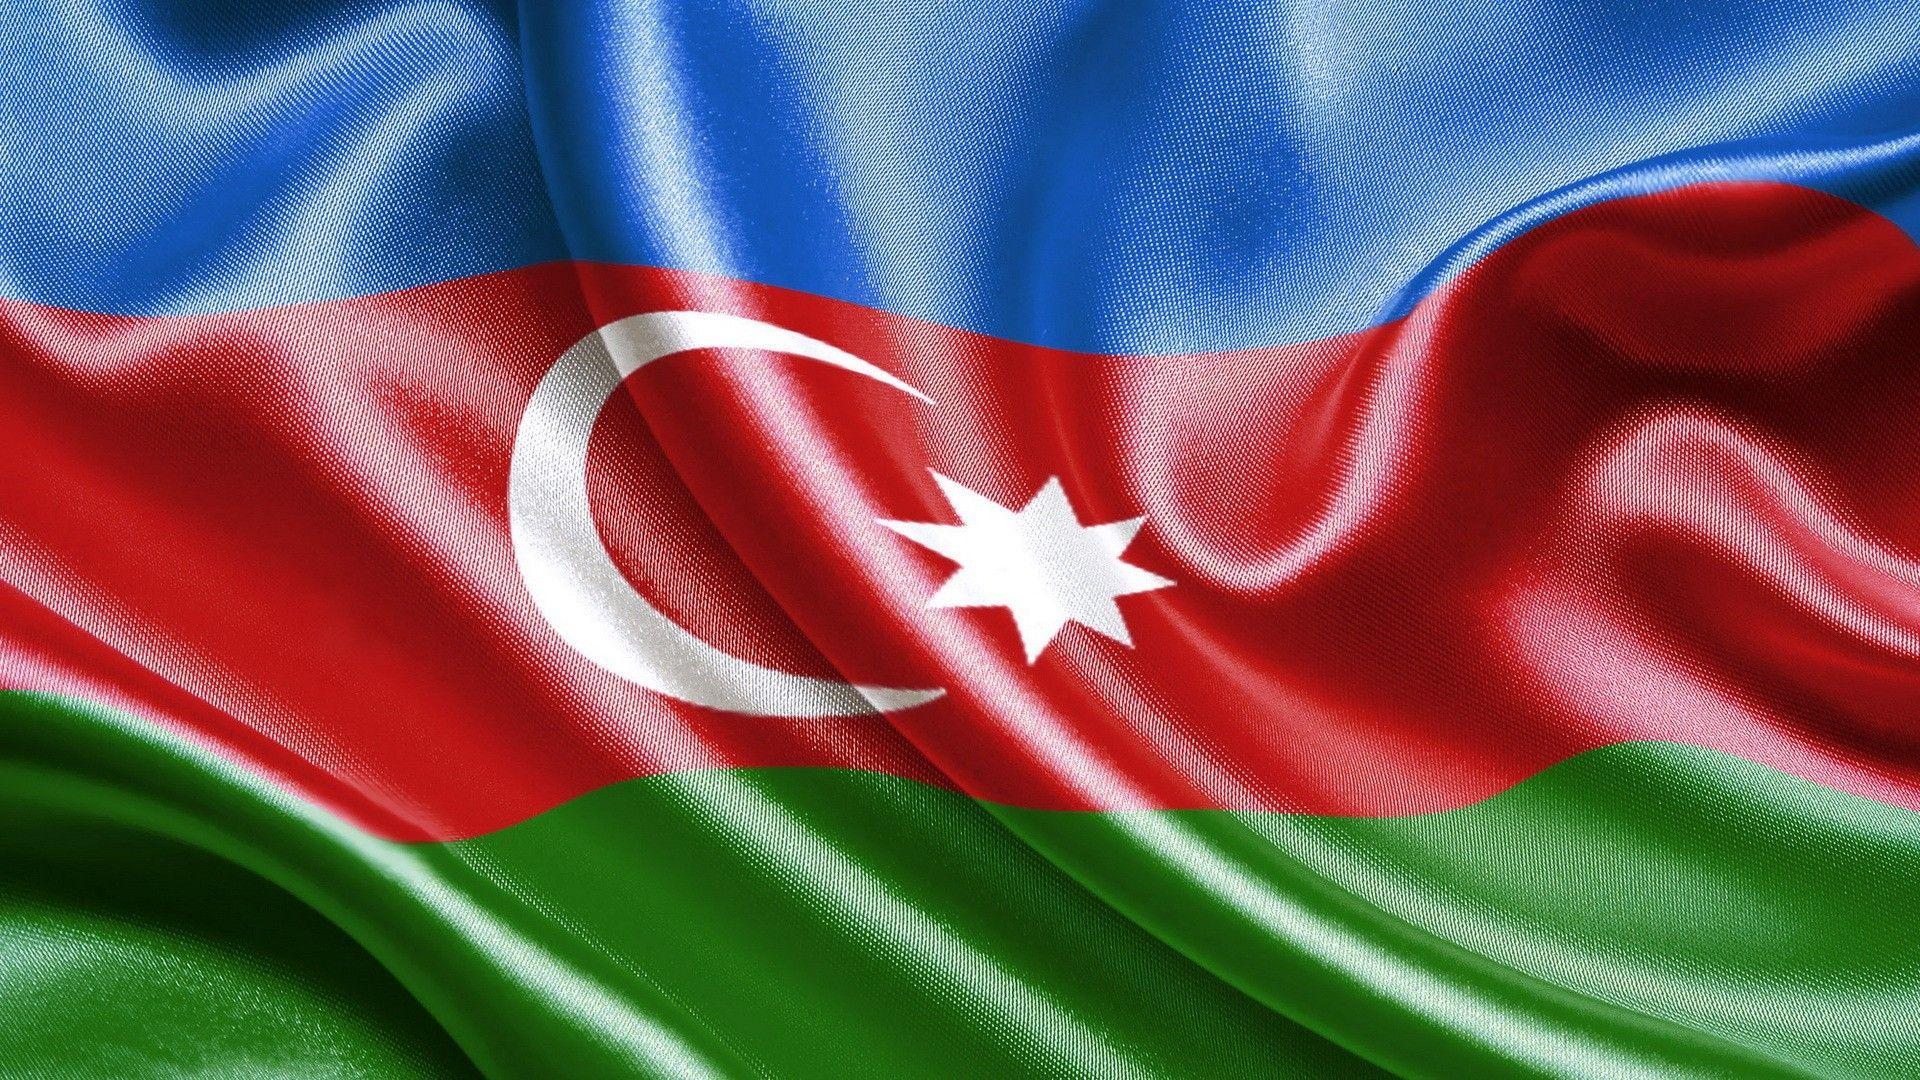 Flag of Azerbaijan wallpaper | Education | Pinterest | Flag ...